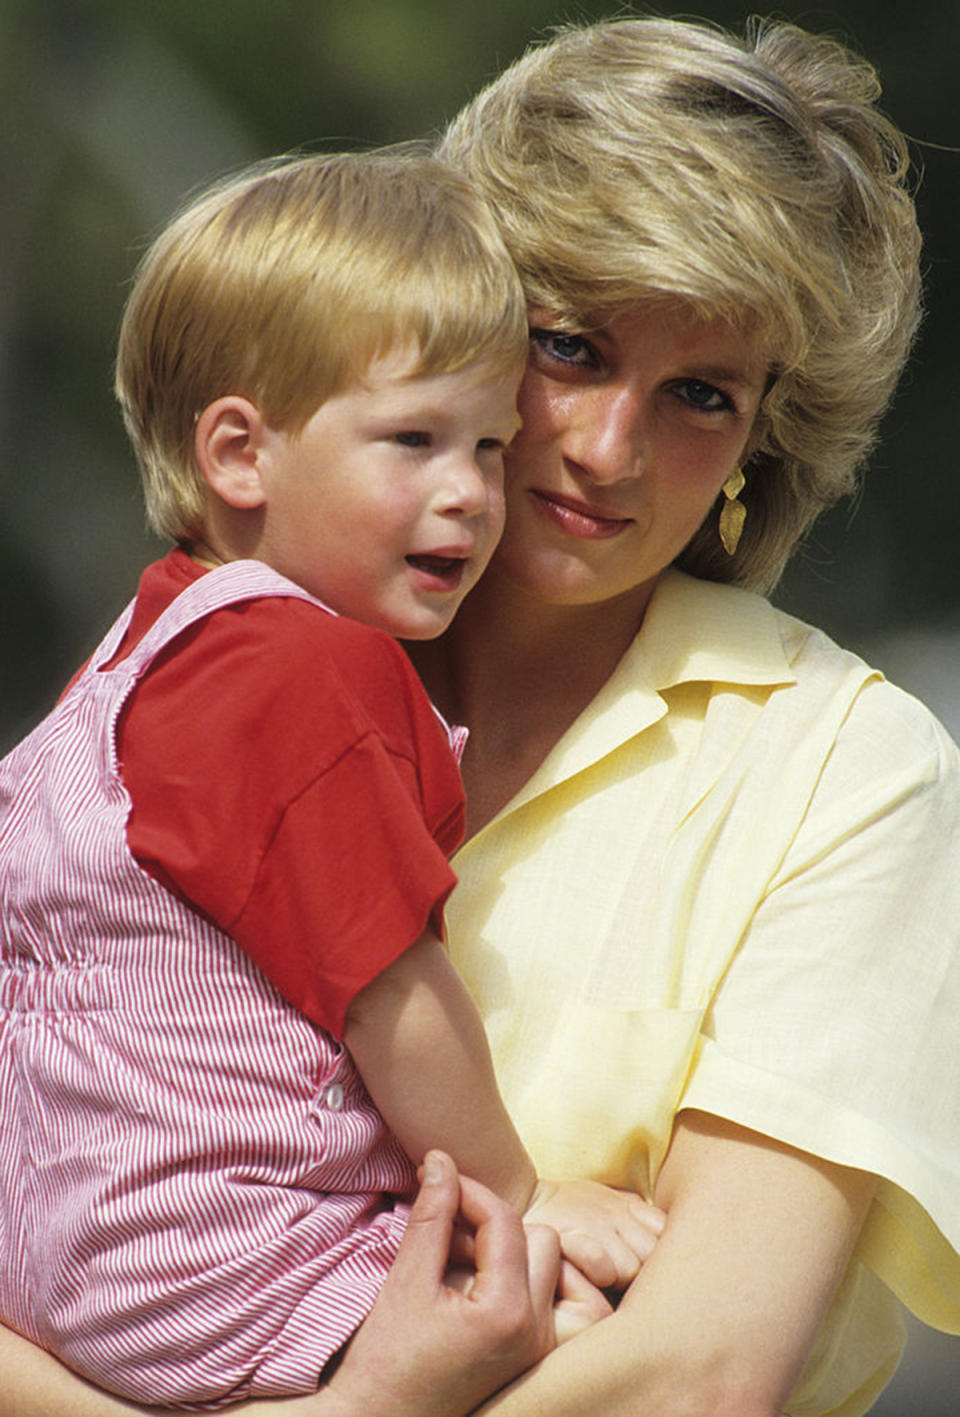 Diana, Princess of Wales holds a young Prince Harry on holiday in Majorca, Spain on August 10, 1987